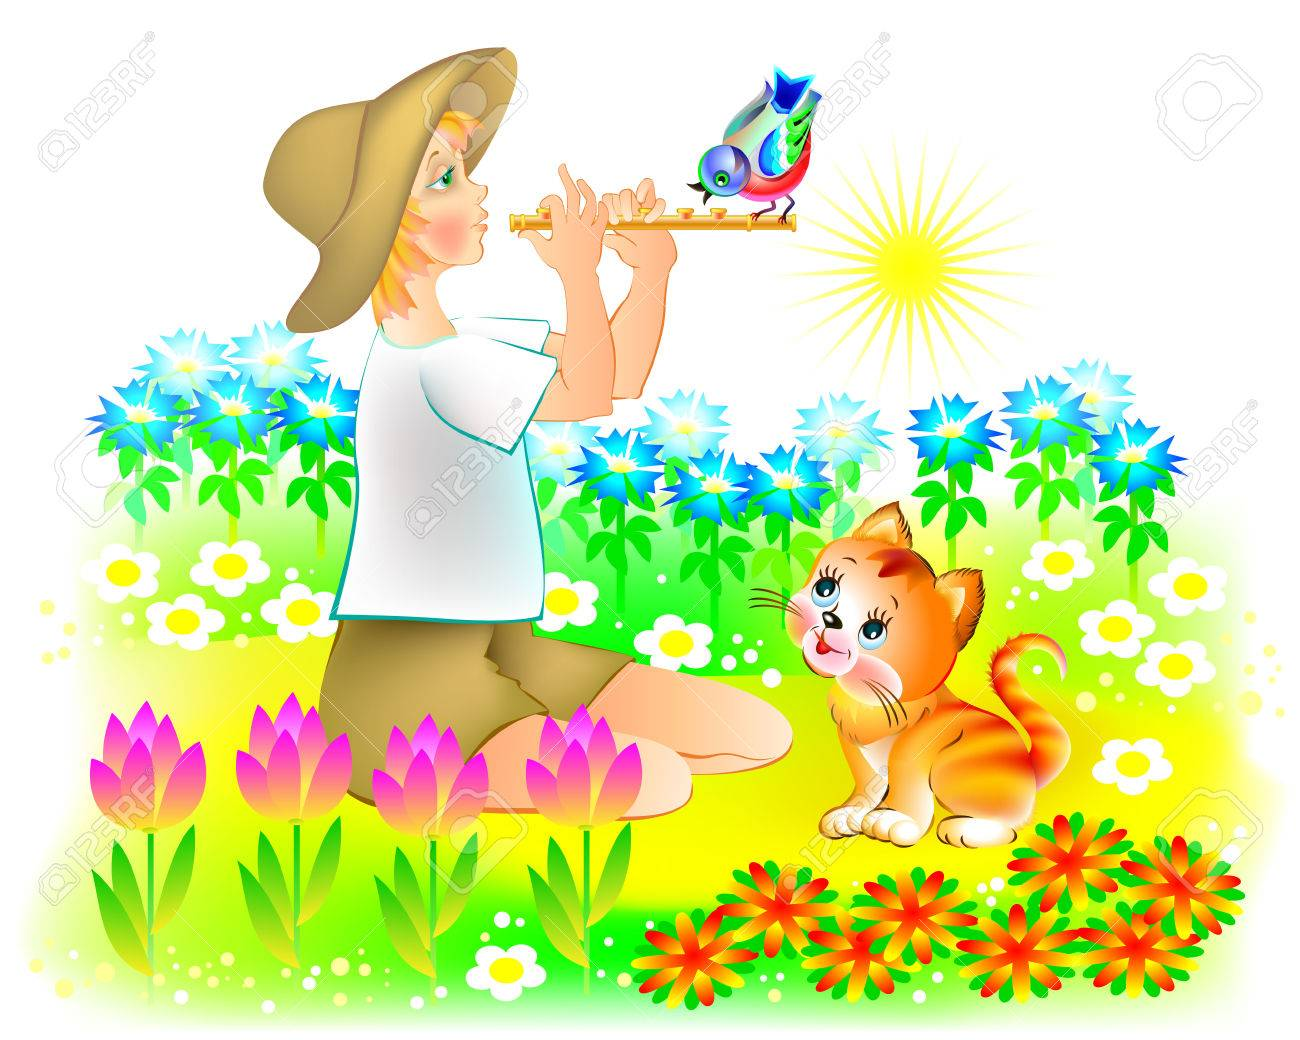 Illustration of little boy playing the pipe at sunrise, vector cartoon image. - 67553420